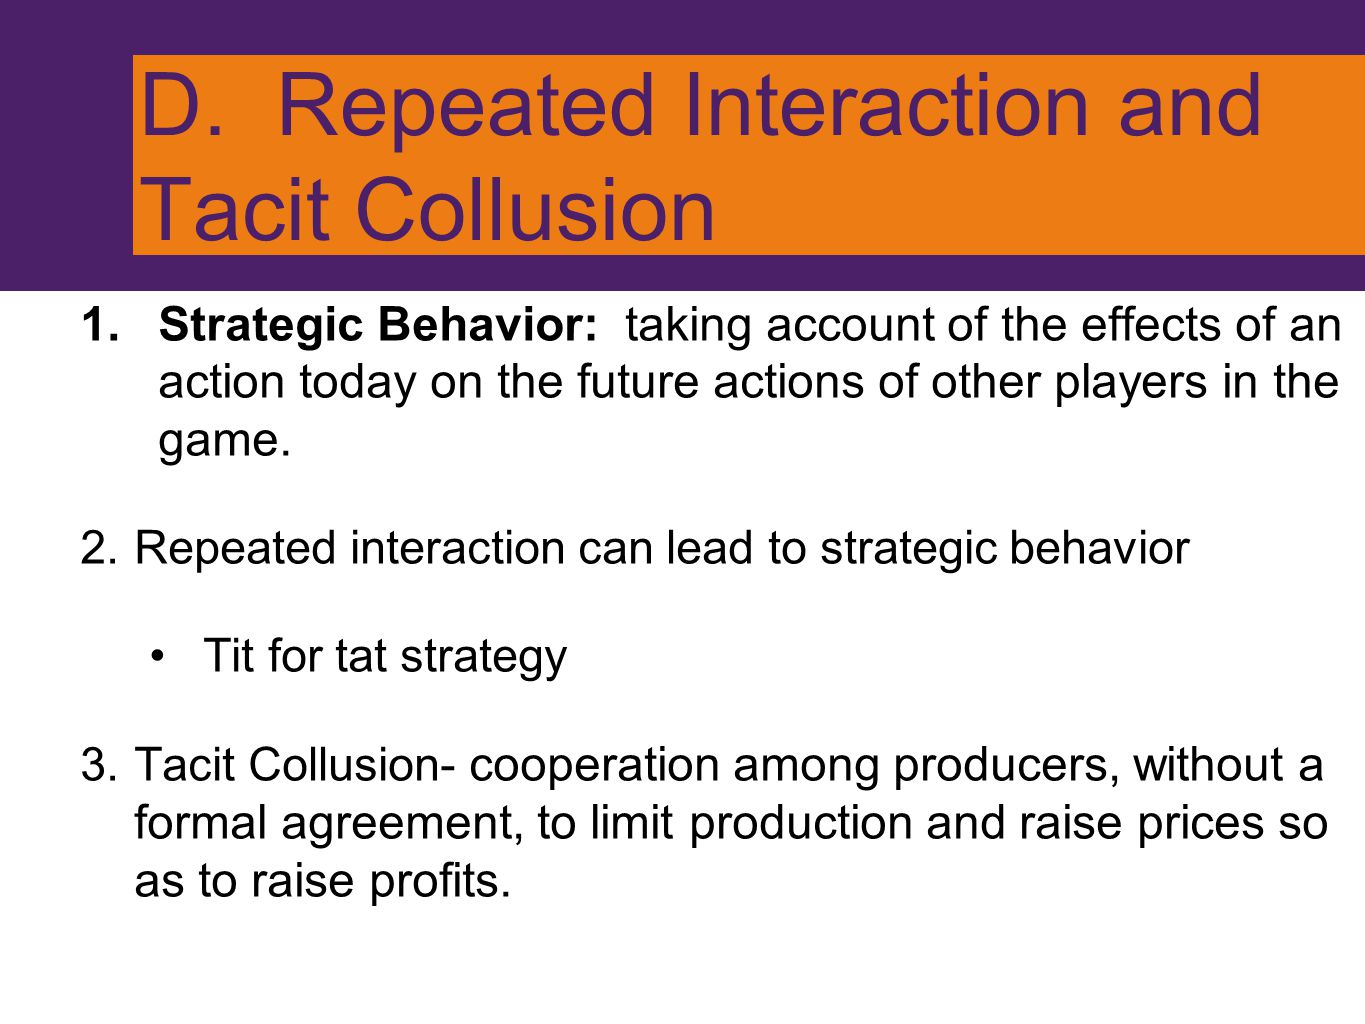 D. Repeated Interaction and Tacit Collusion